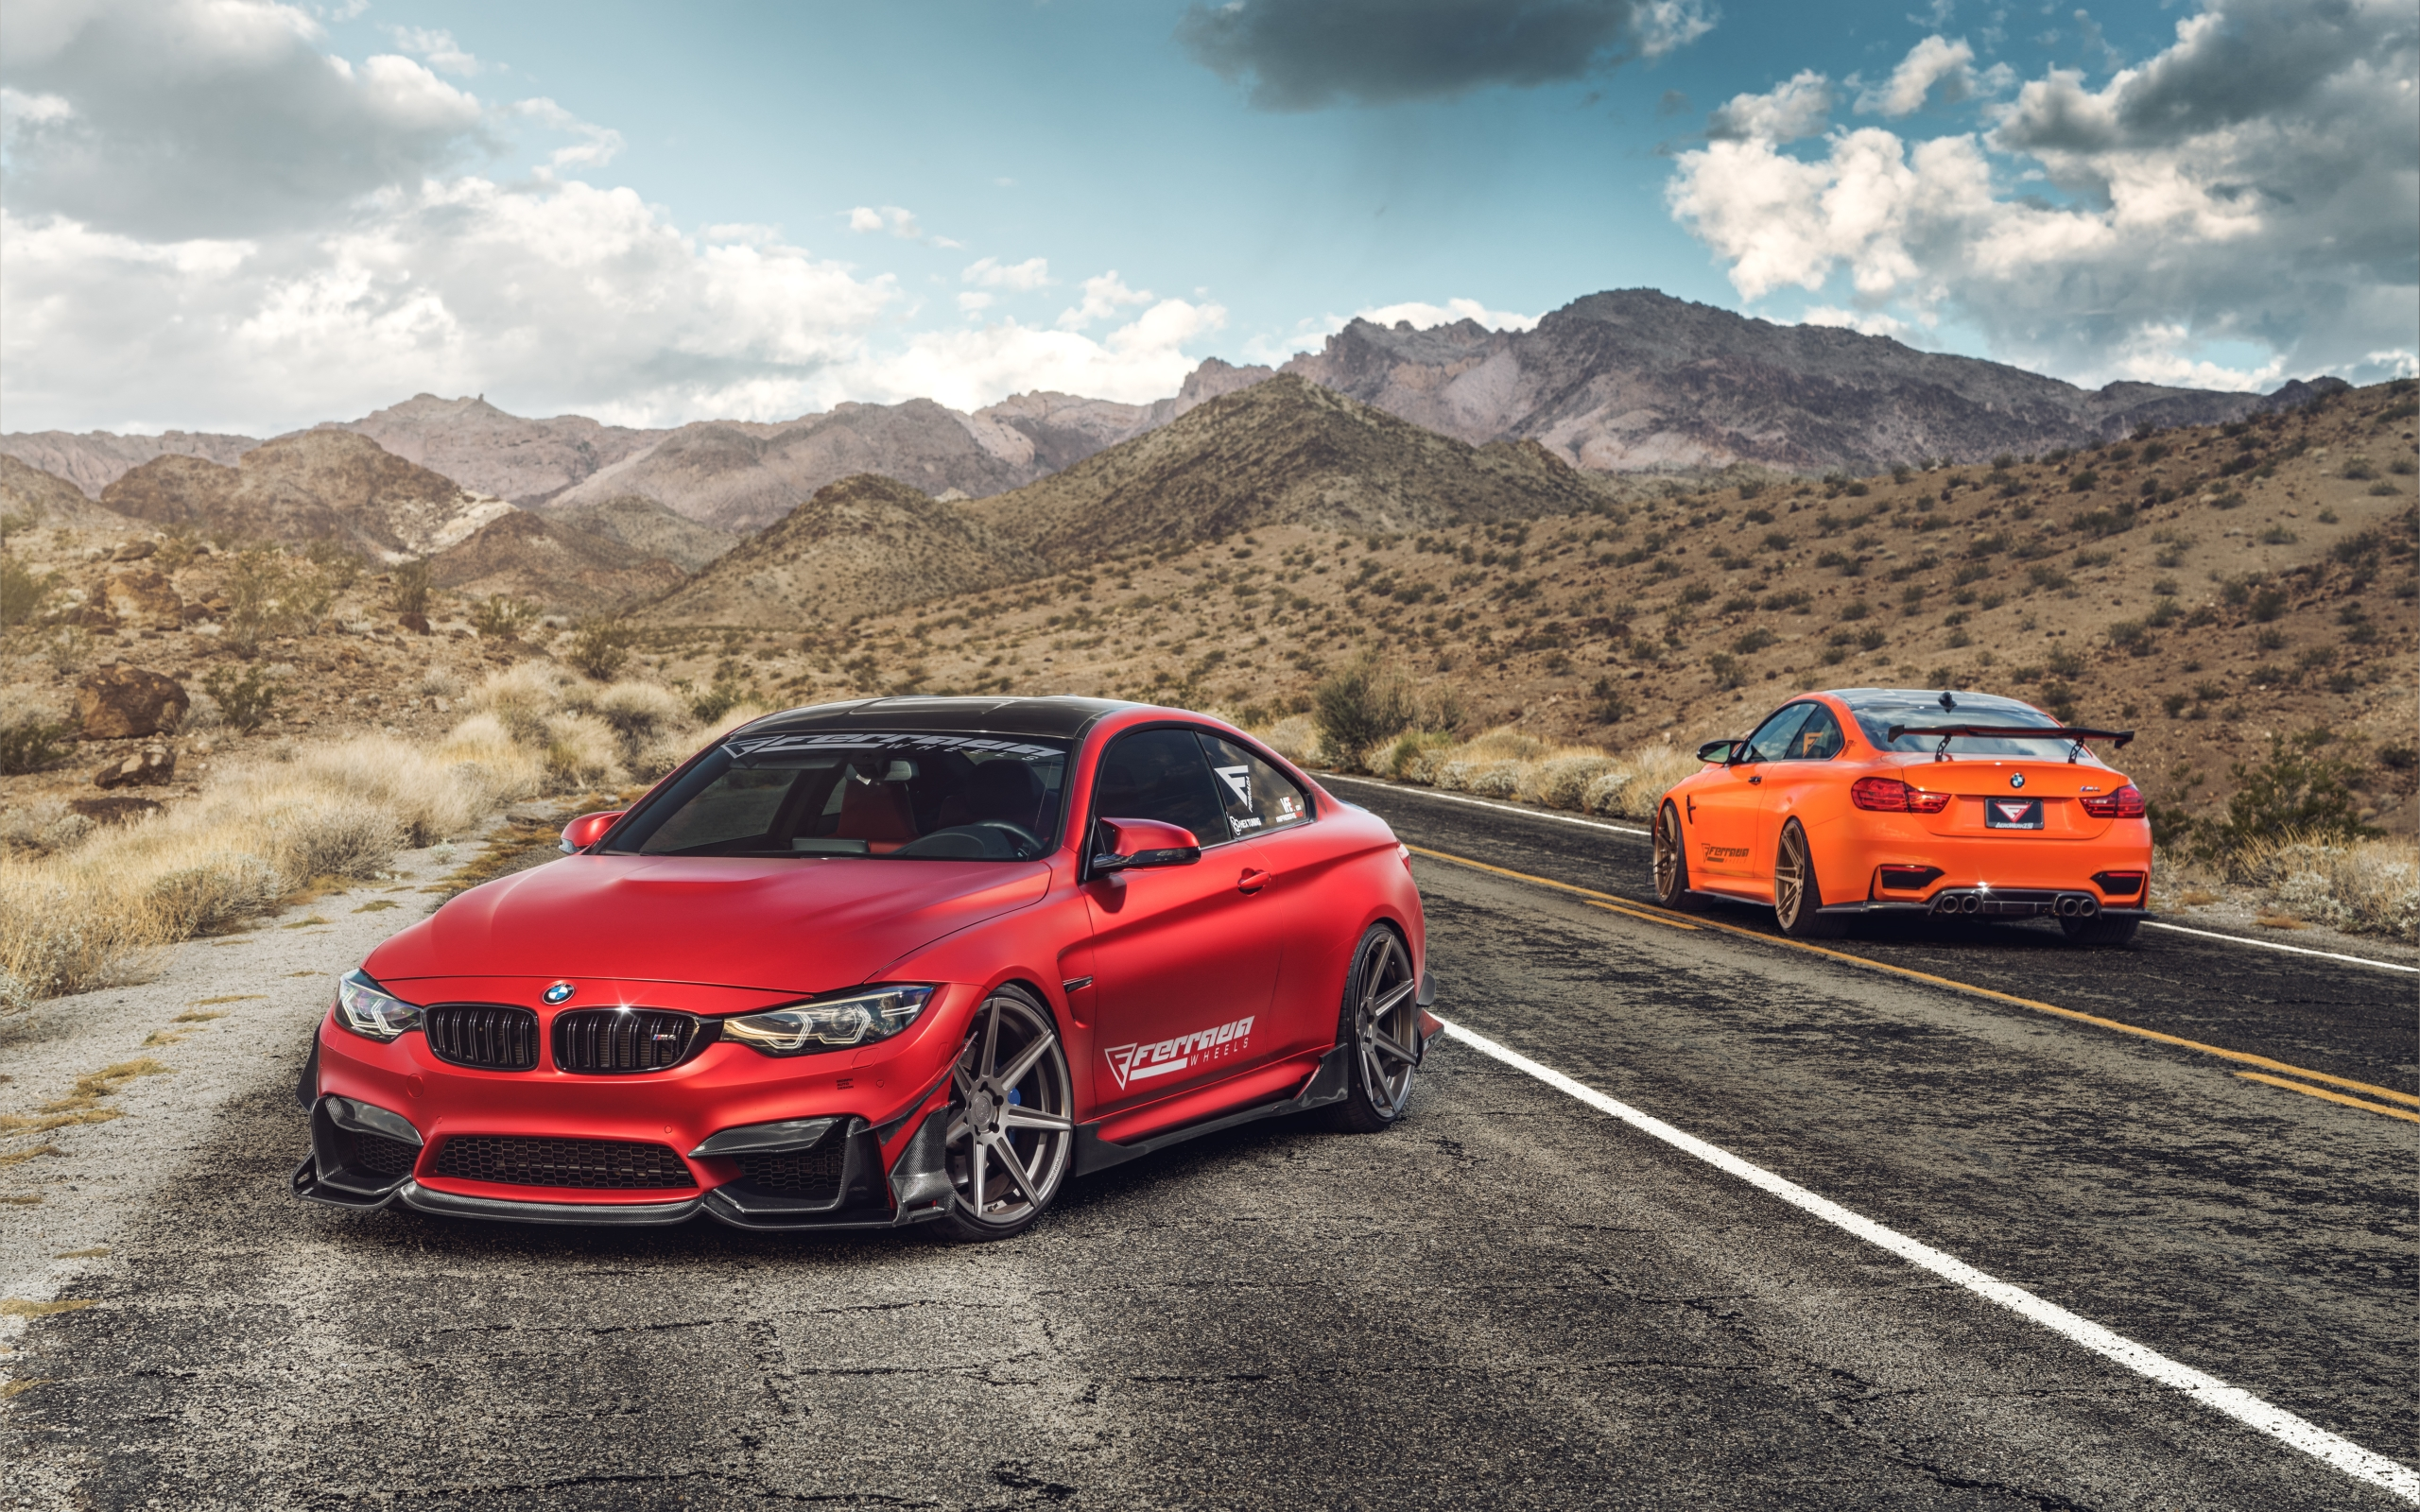 Wallpaper Of Bmw M4 Orange Car Red Sport Car Background